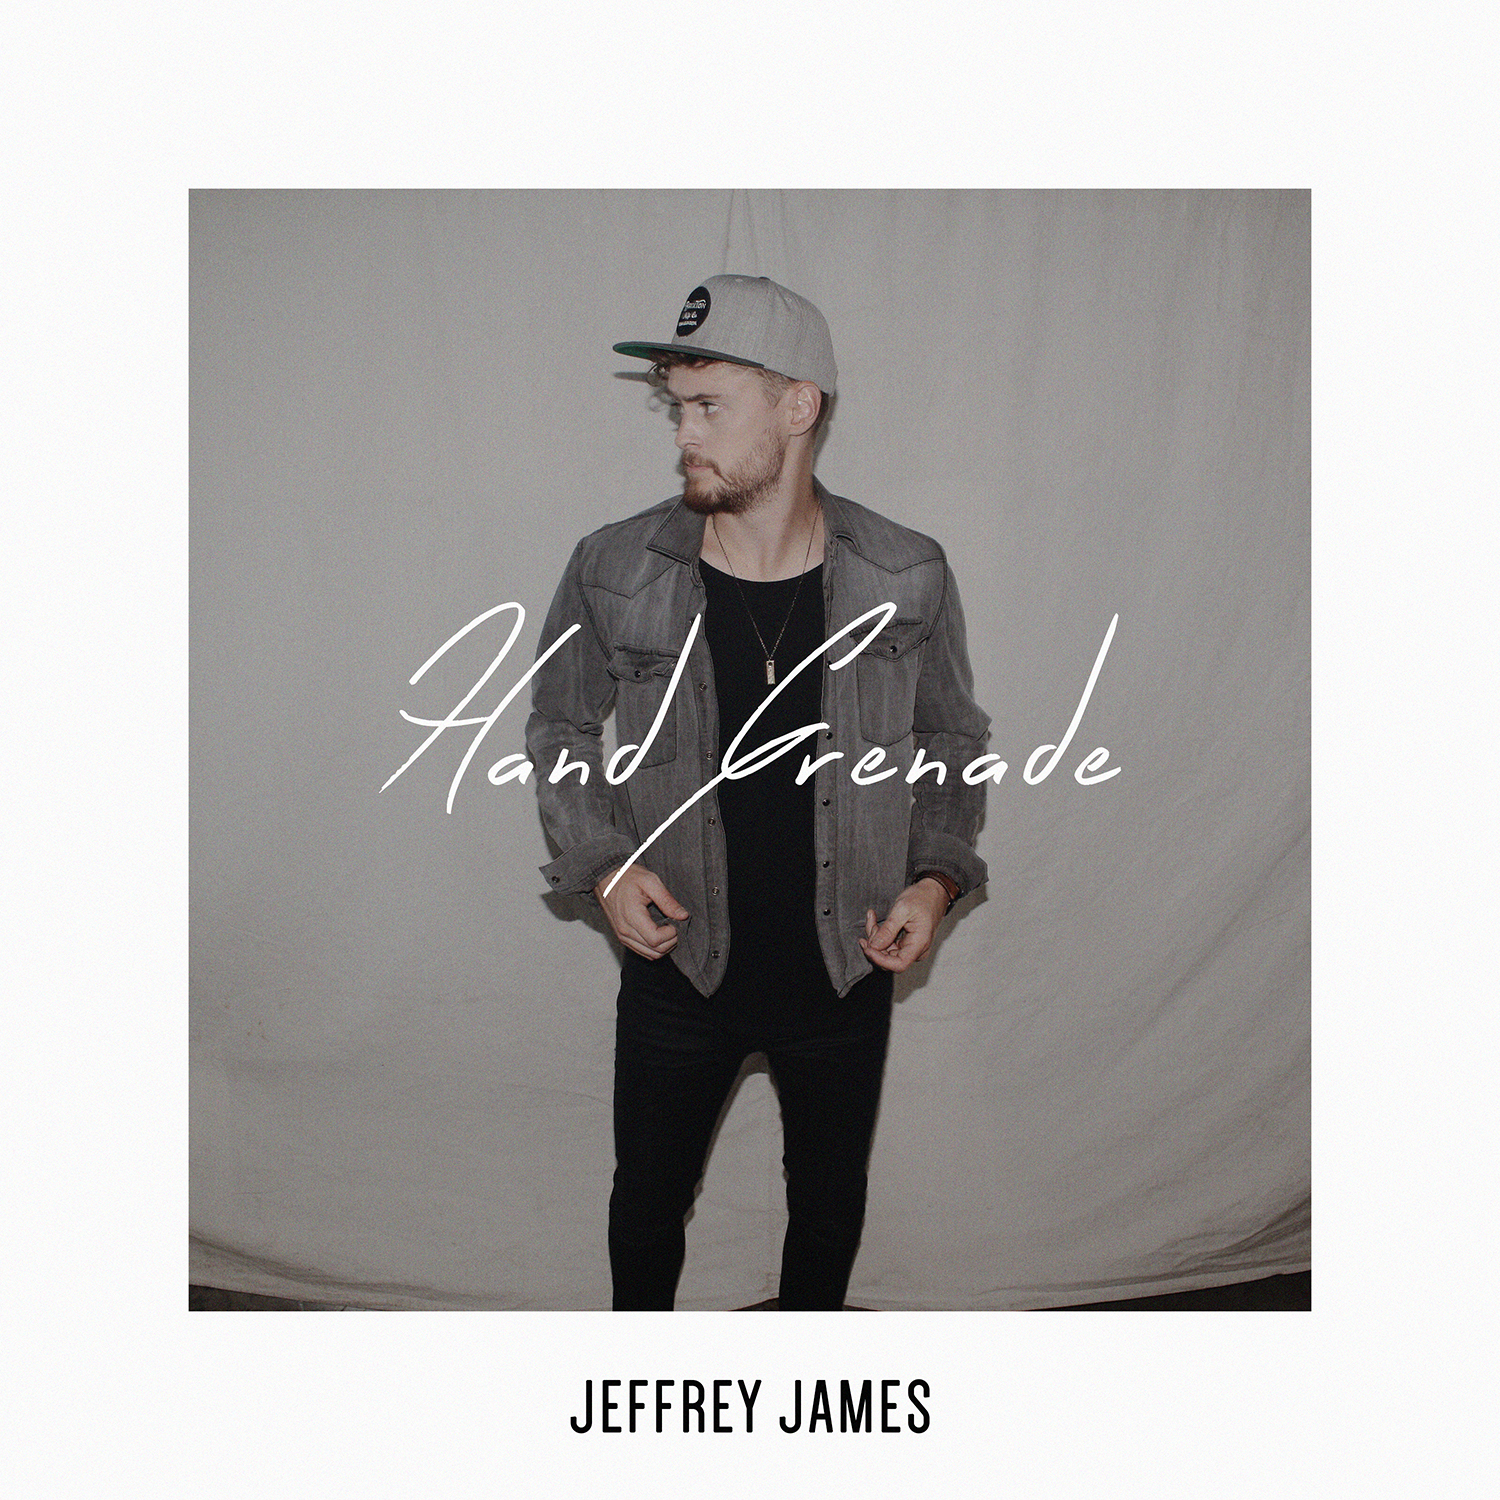 SXS045 Jeffrey James - Hand Grenade